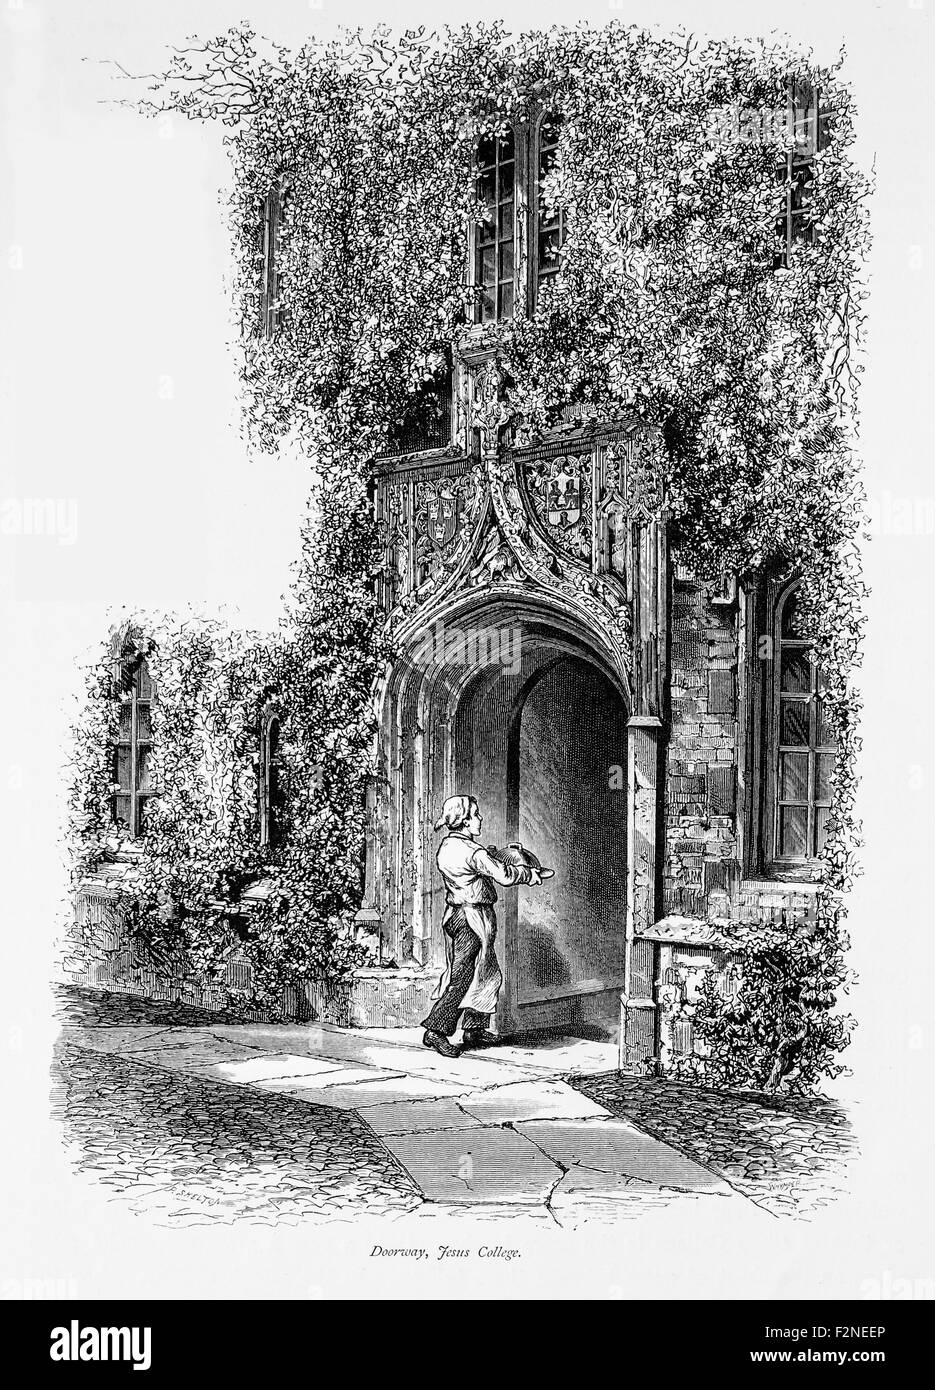 Doorway, Jesus College, _Illustration from 'The British isles - Cassell Petter & Galpin Part 6 Picturesque - Stock Image